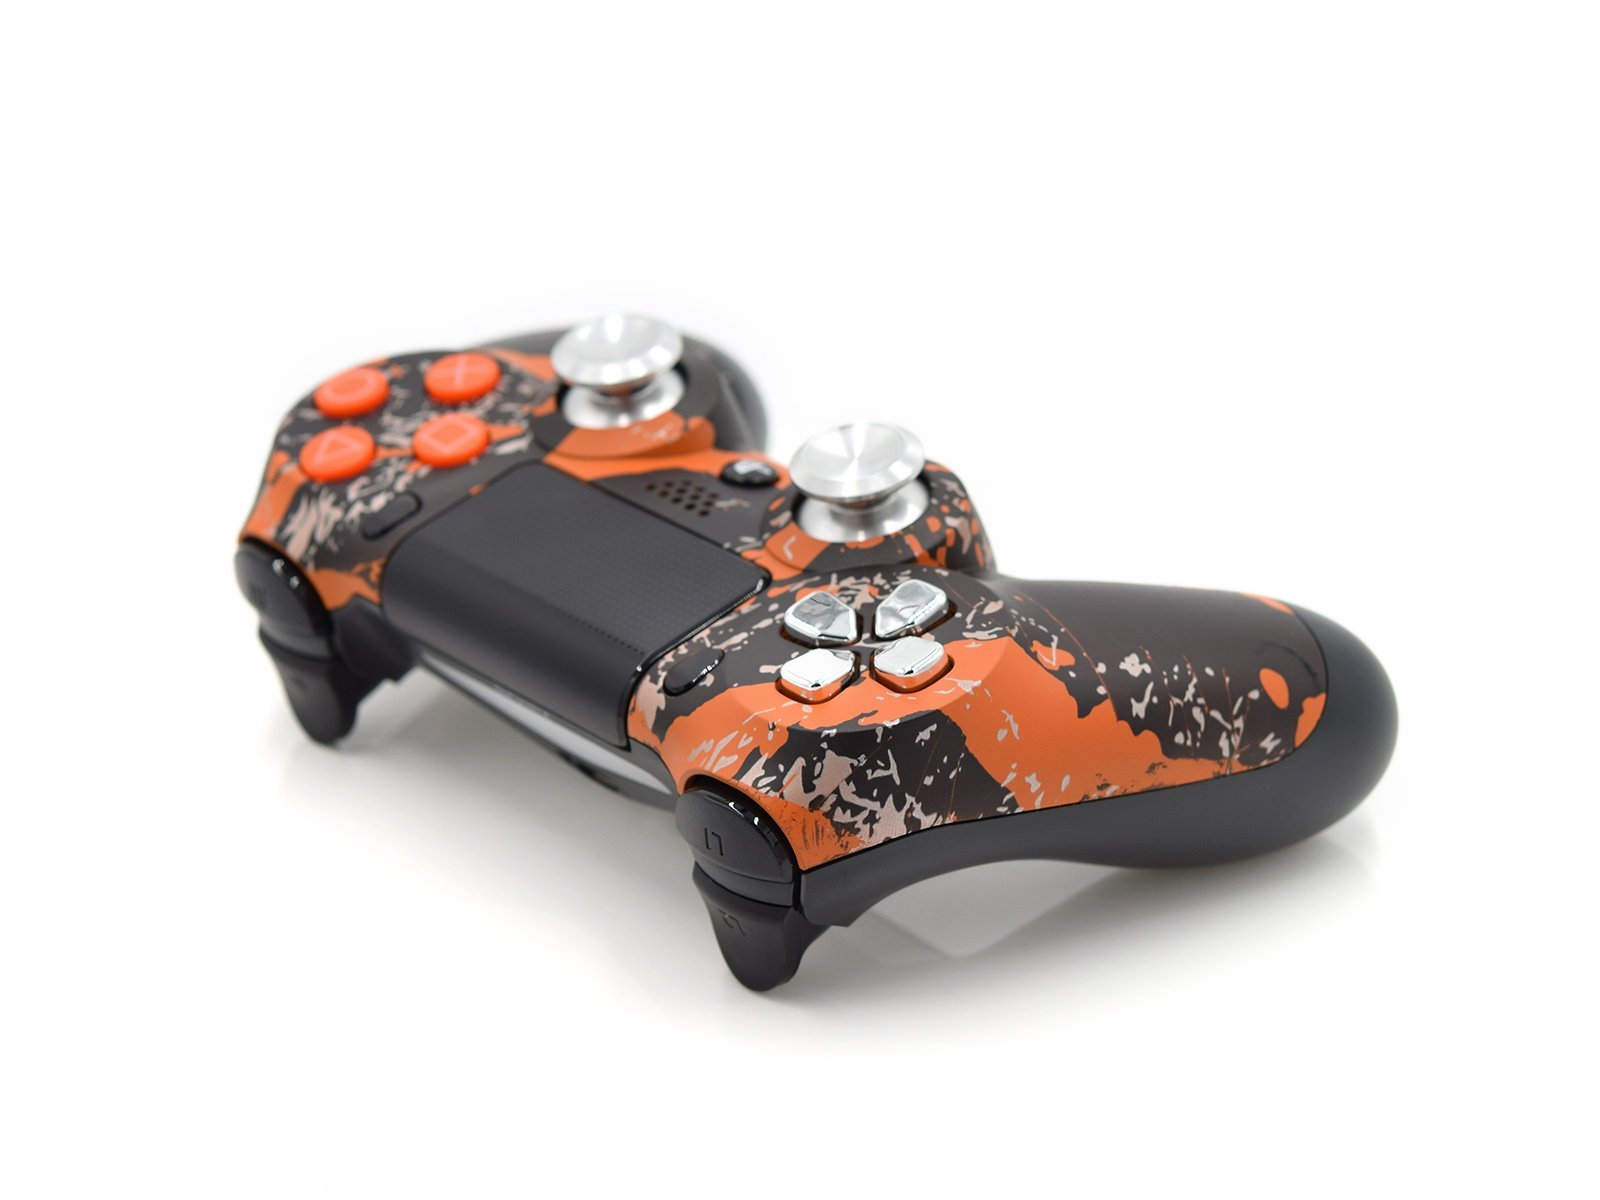 Red Splatter Custom Controller For PS4